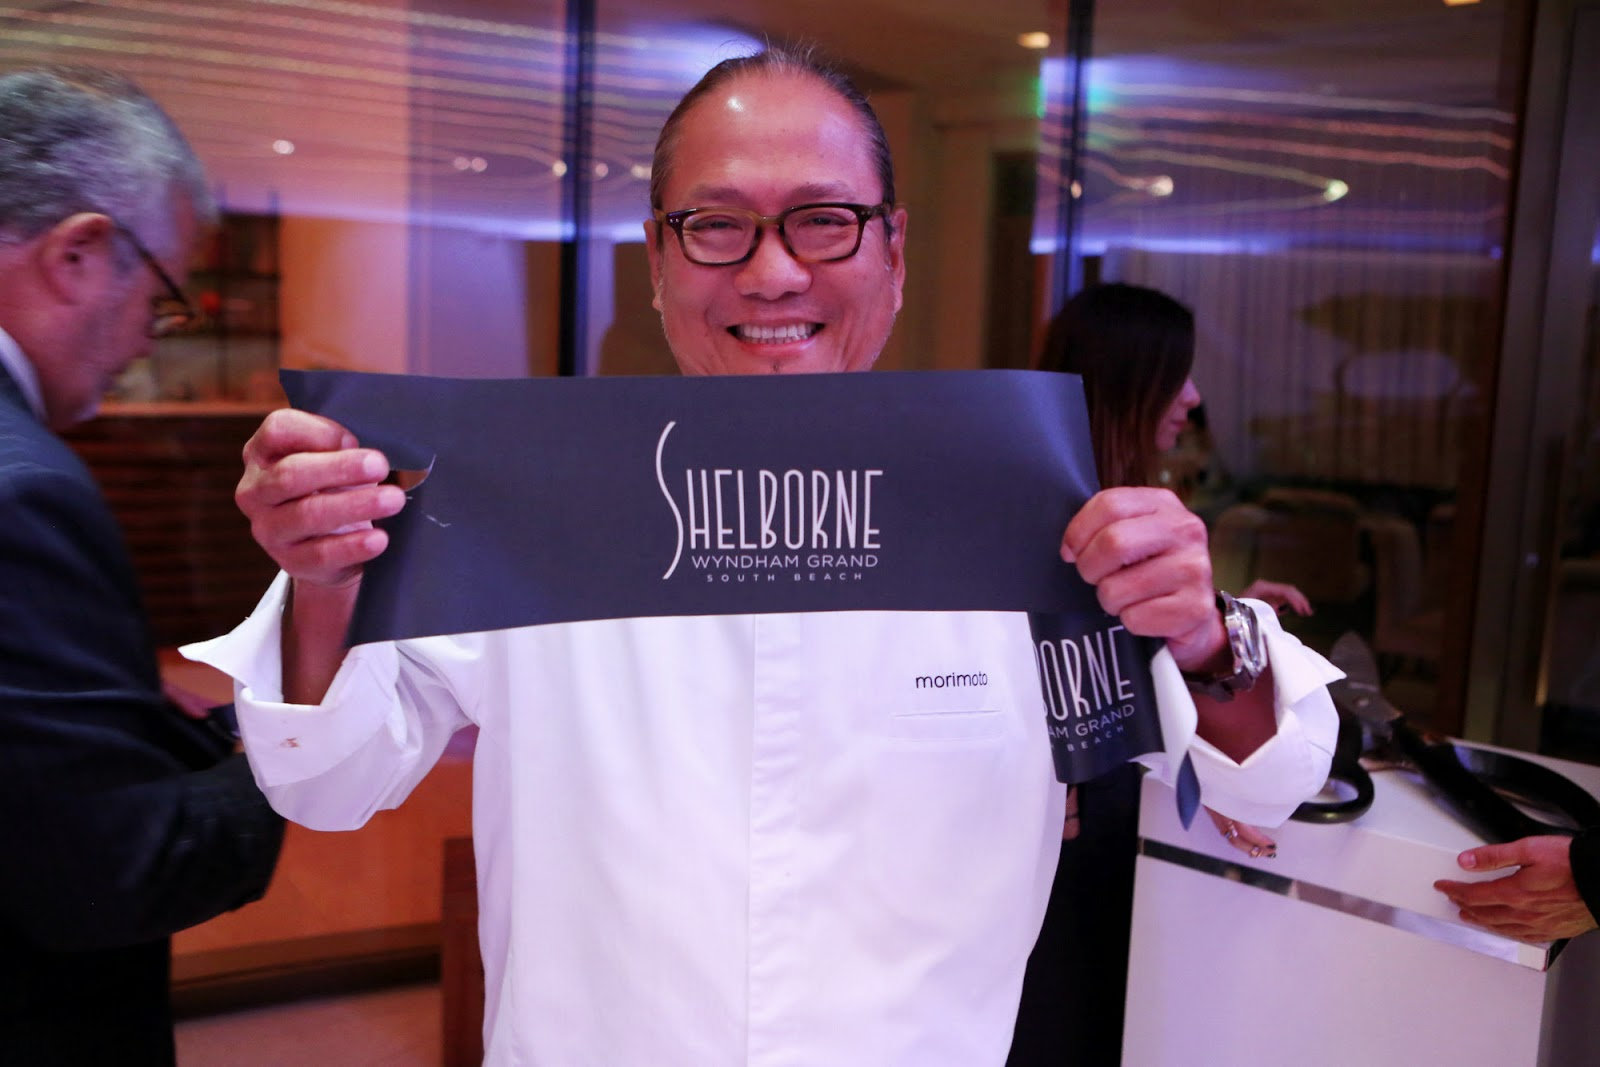 Events: Shelborne Wyndham Grand South Beach Hosts Ribbon Cutting Ceremony and VIP Celebration